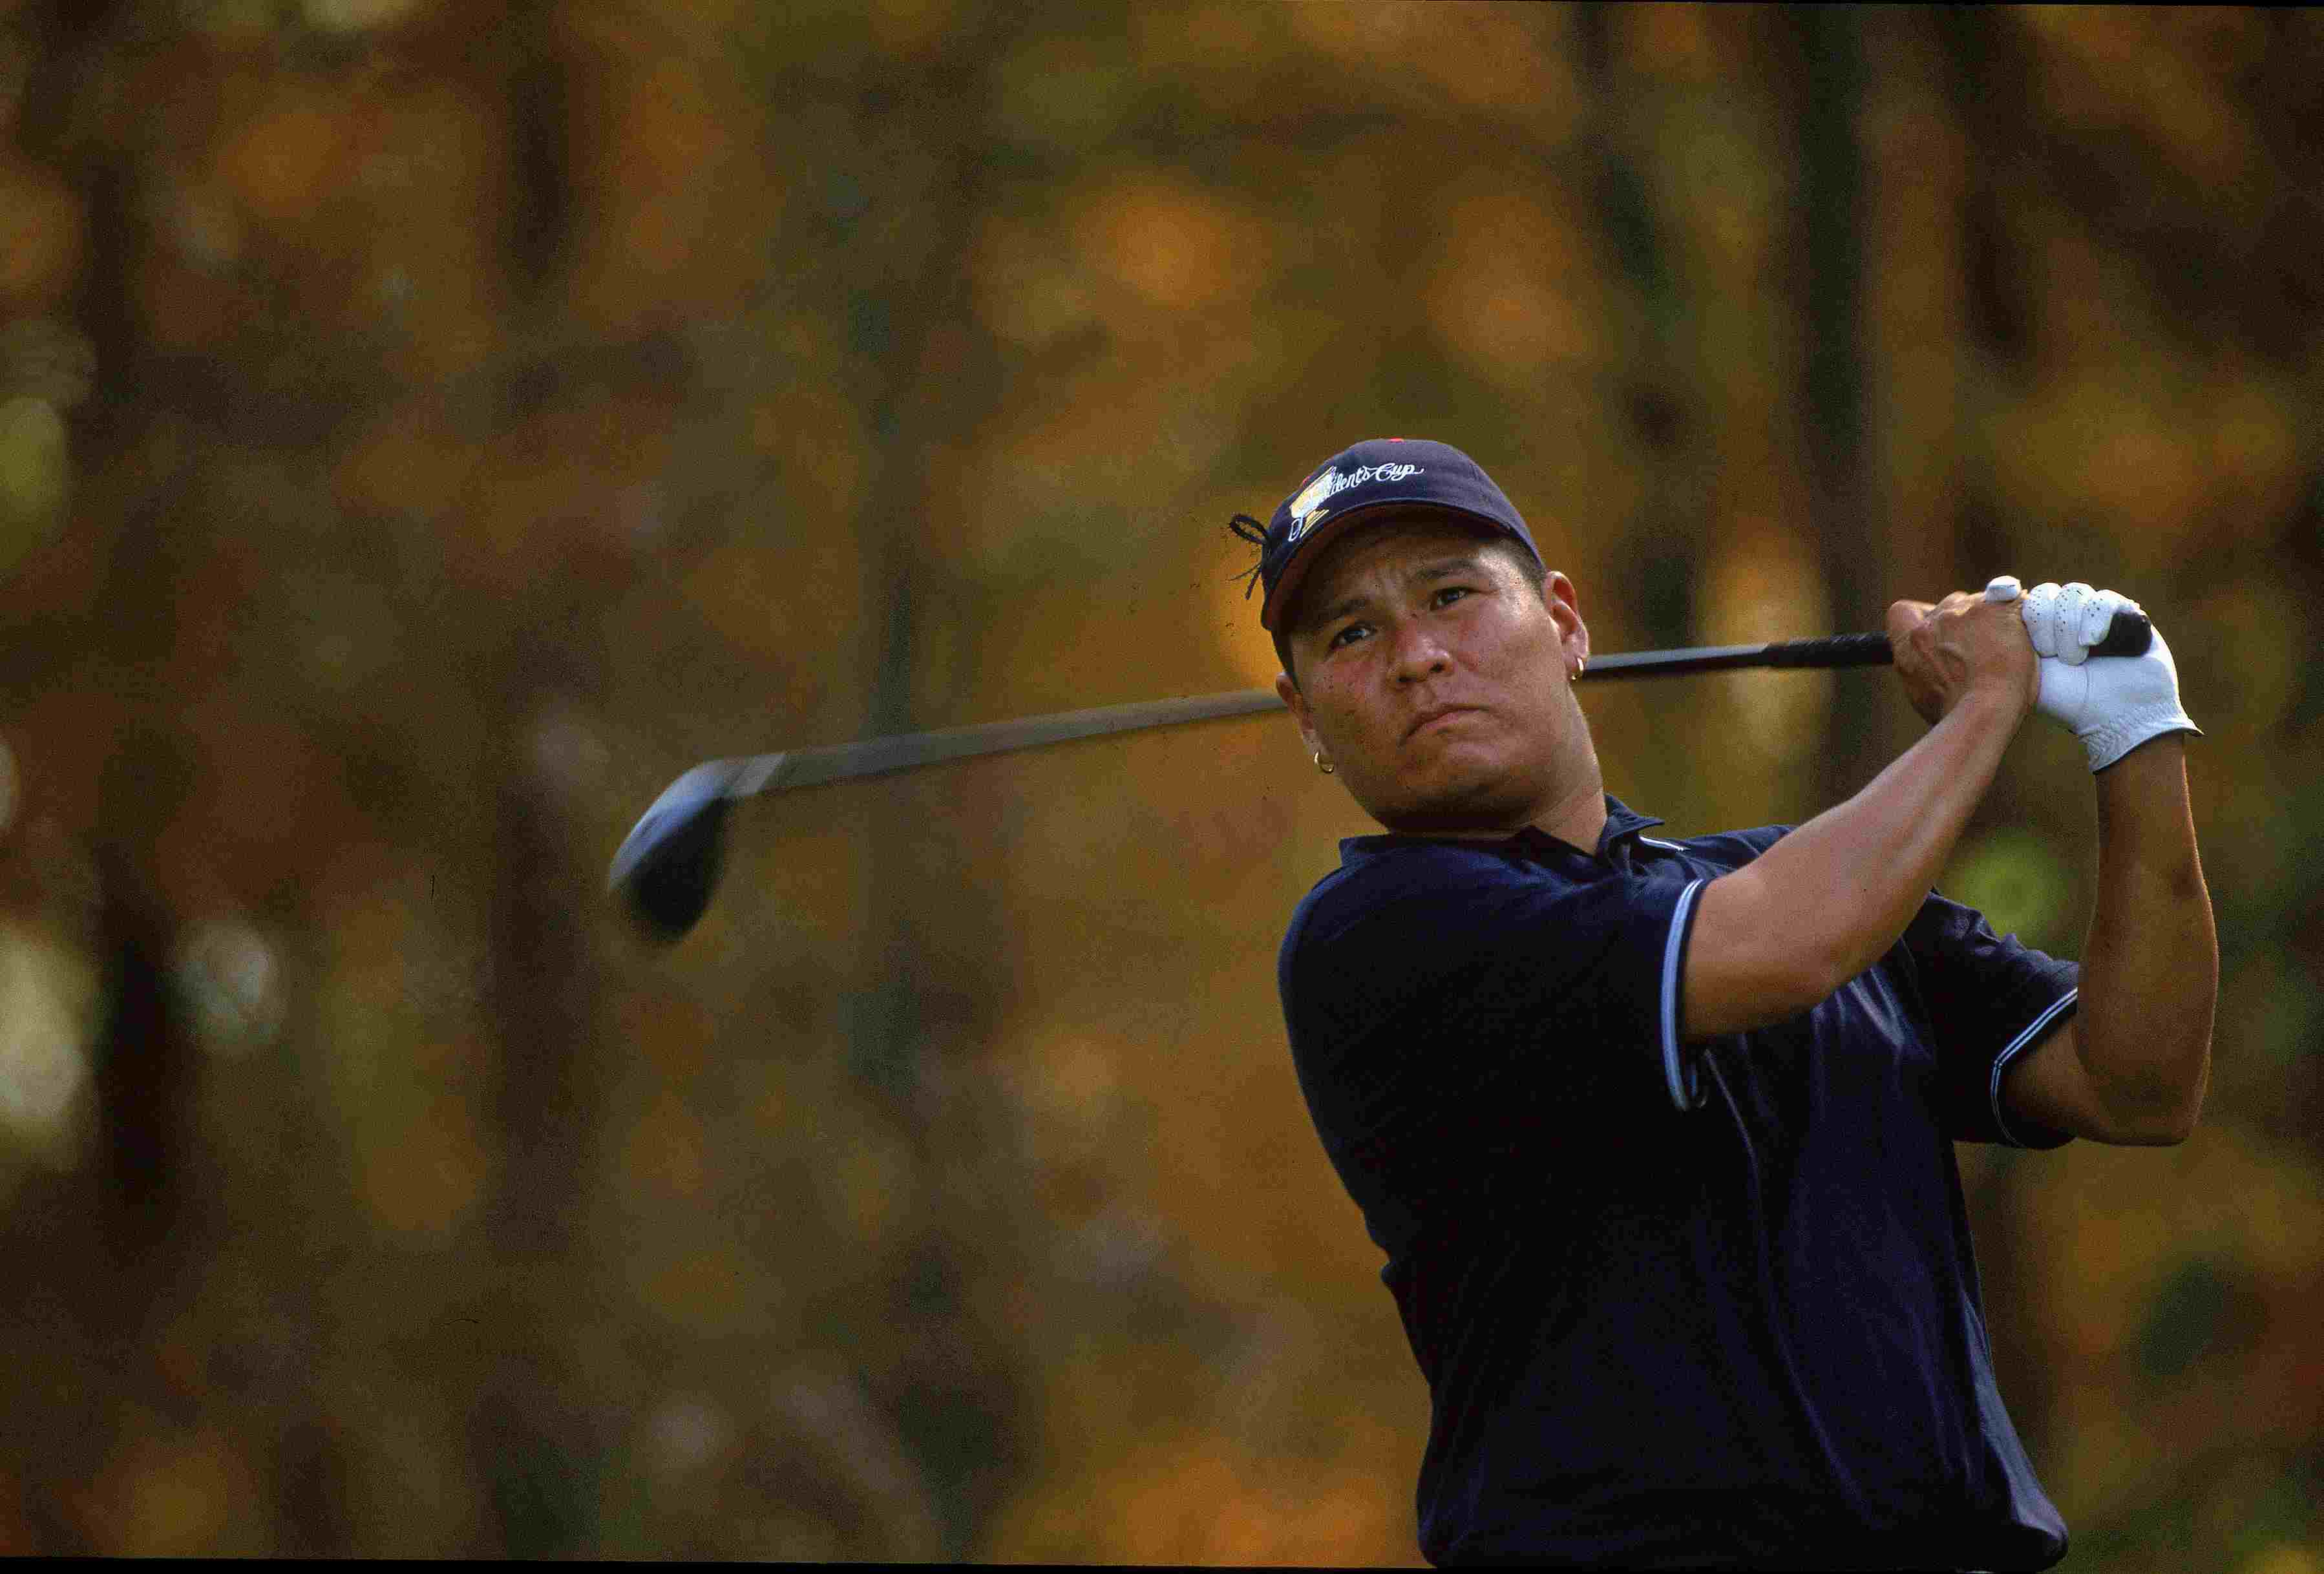 Notah Begay III during The Presidents Cup matches in 2000